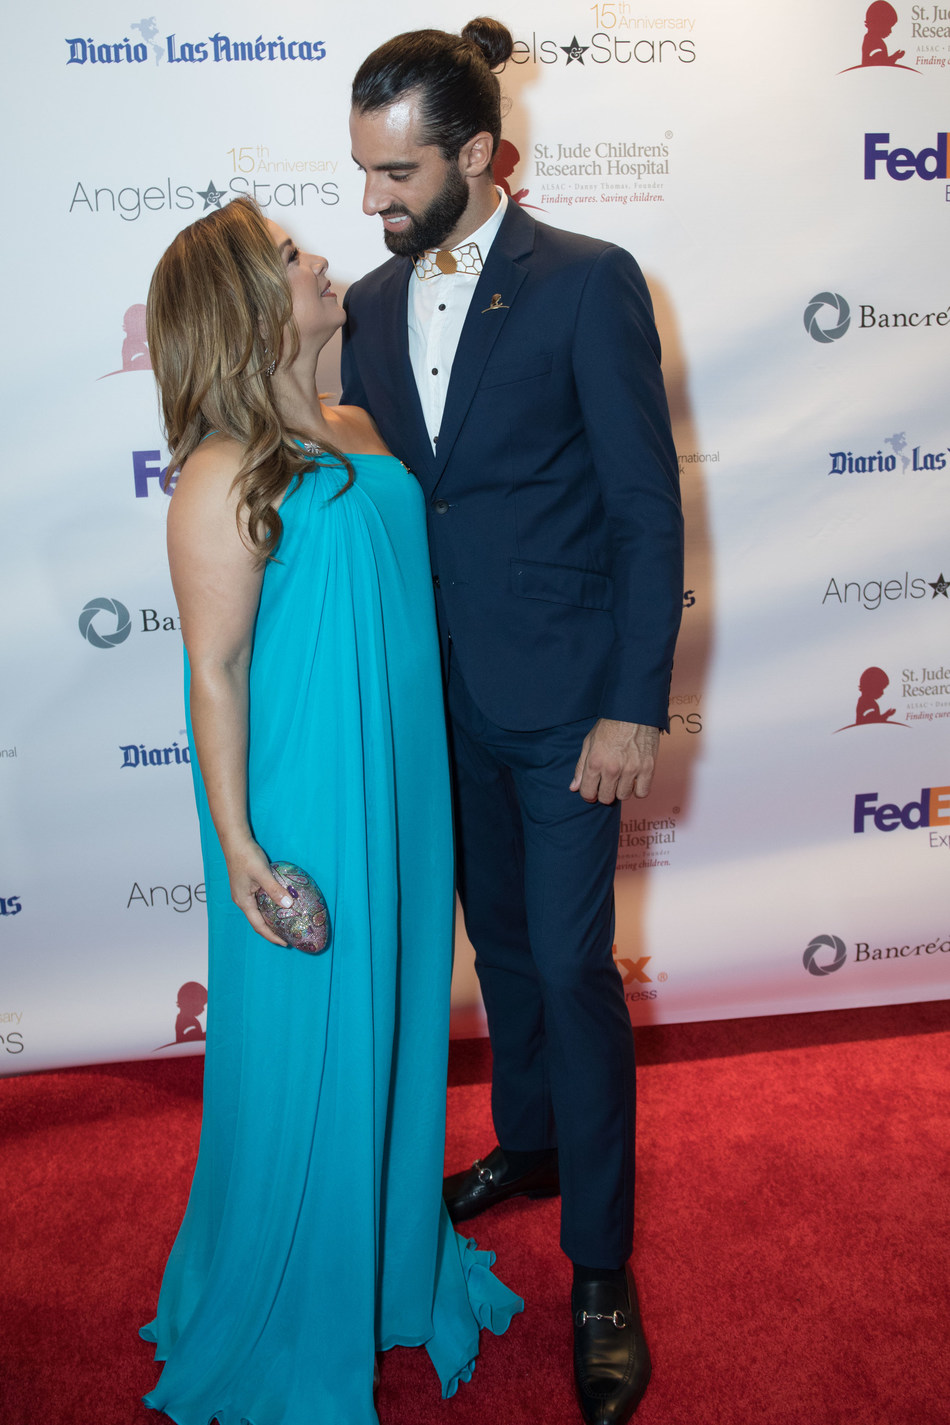 Honoree Adamari Lopez & Toni Costa attend the 15th annual FedEx St. Jude Angels & Stars Gala in Miami on Saturday May 20th